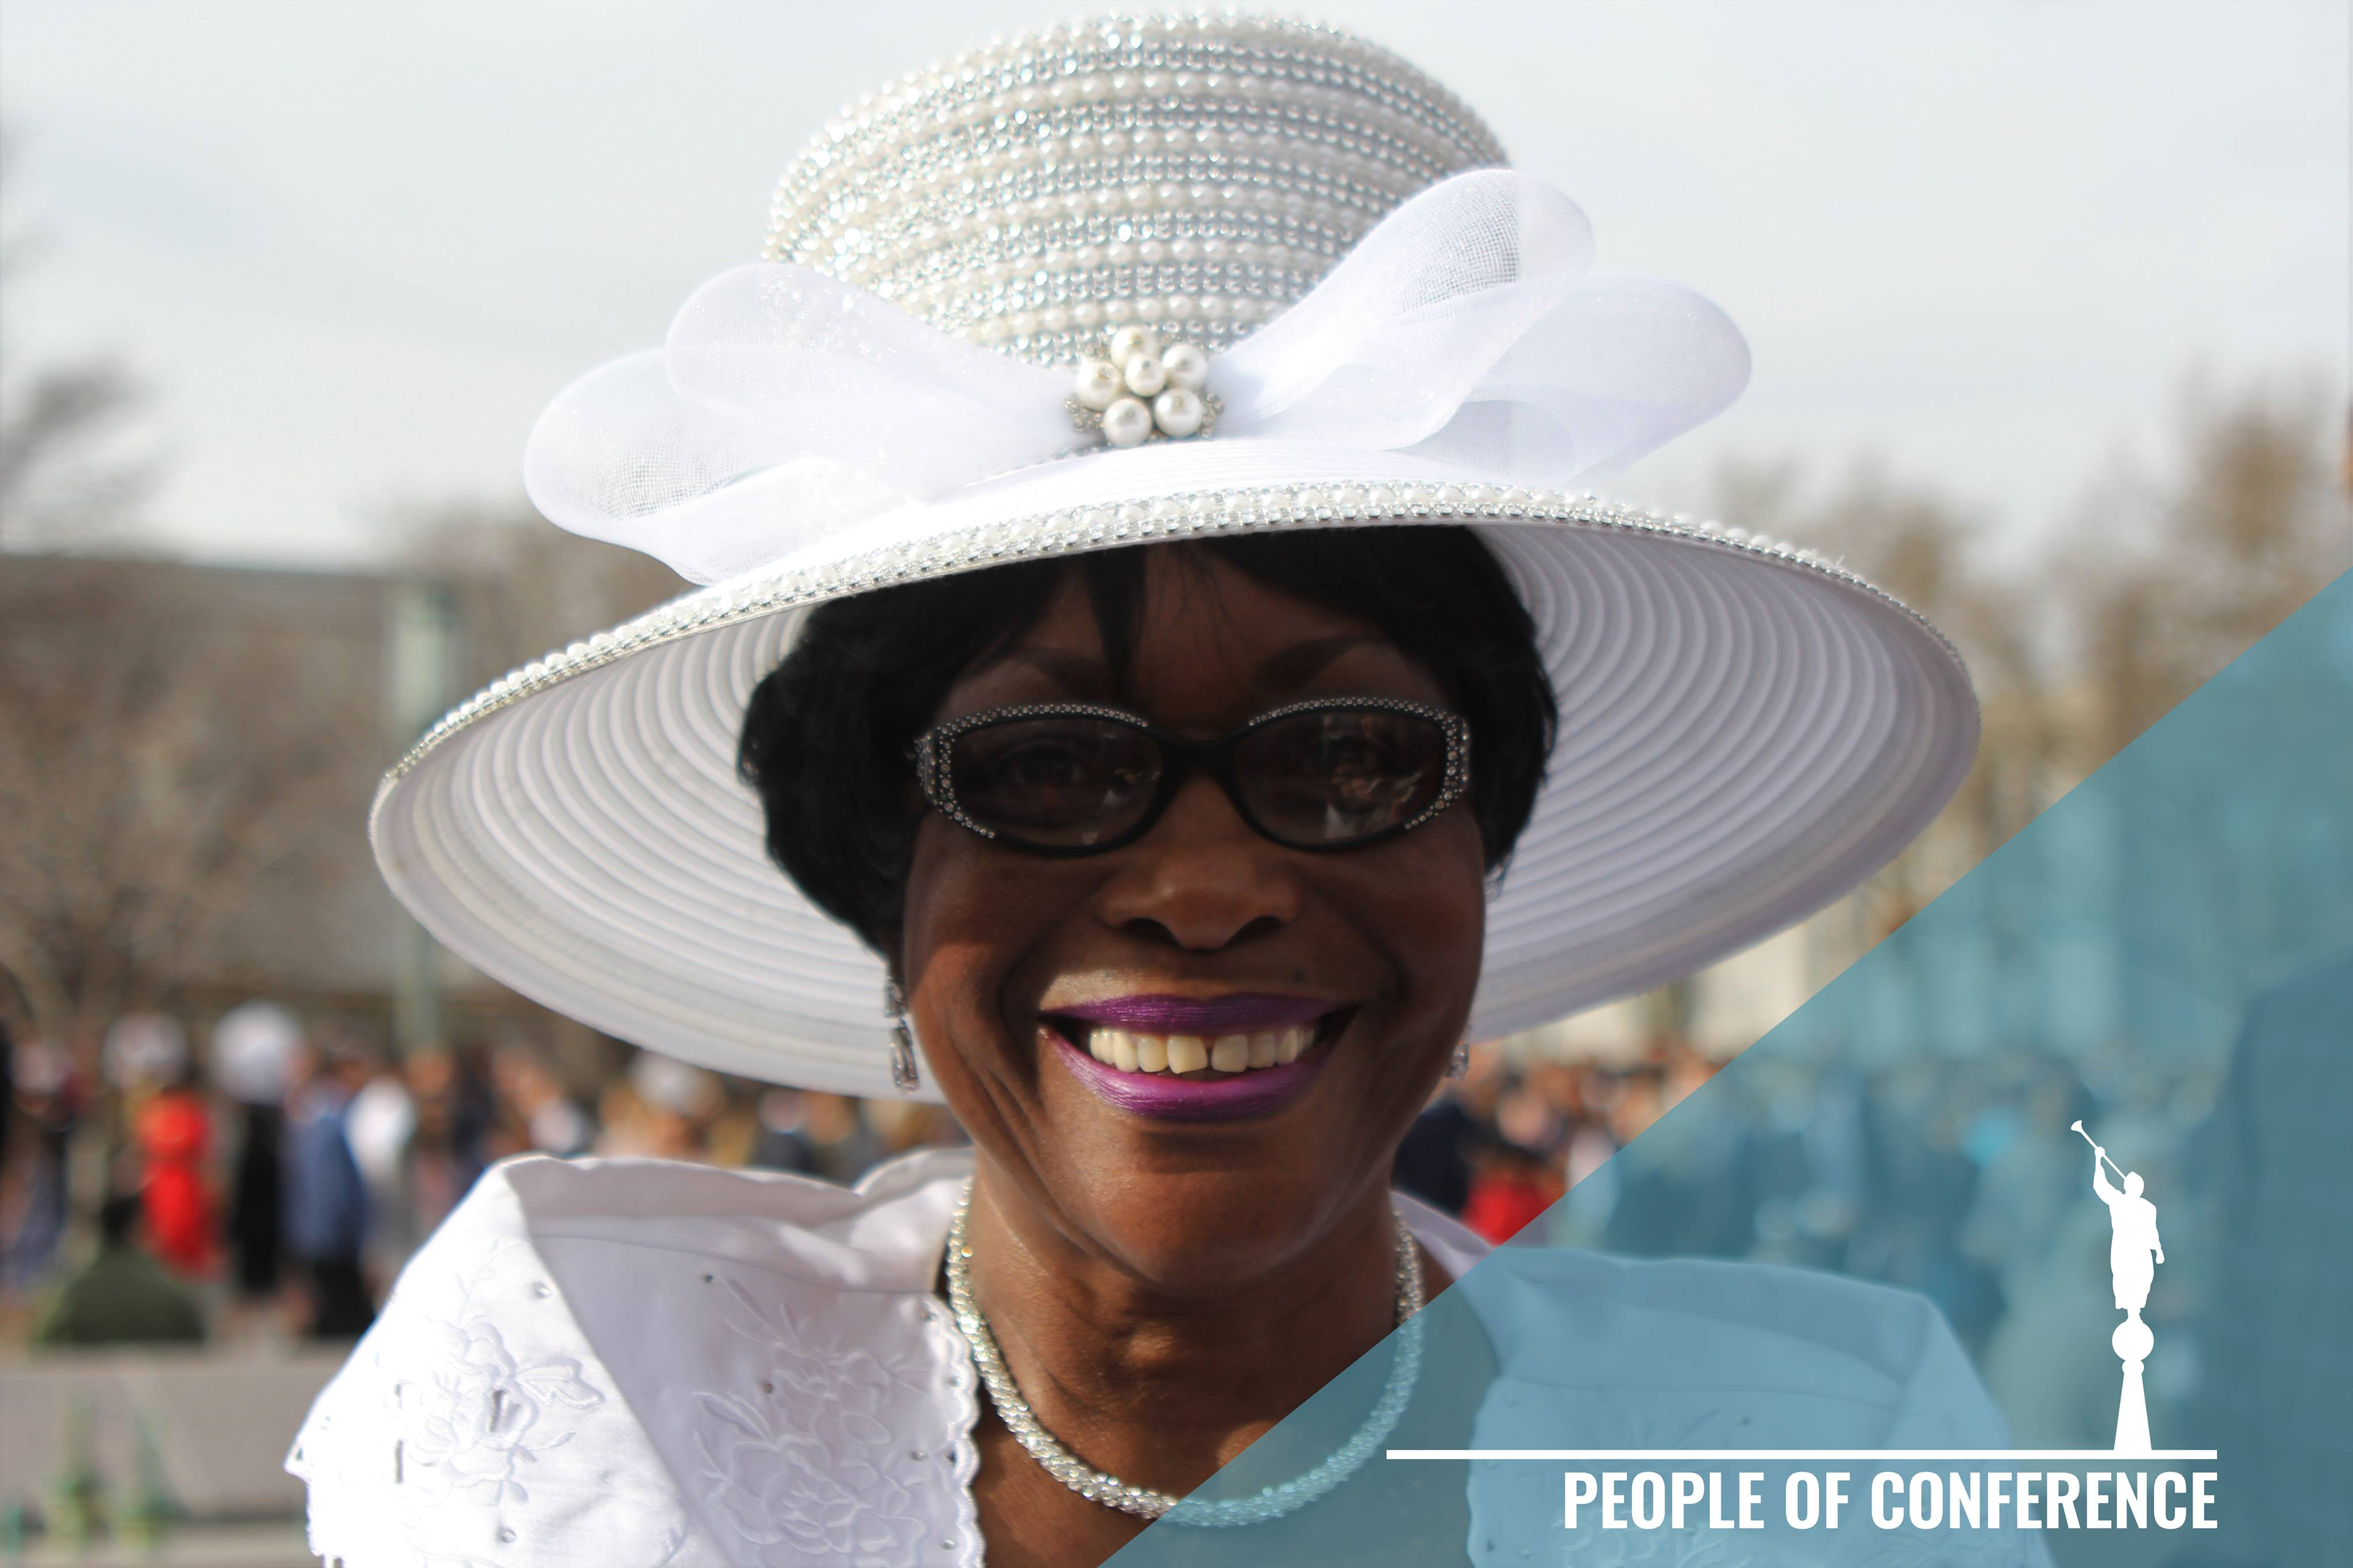 """""""I am a pastor of a Non-Denominational church visiting. This is my first time here and I'm sure it's going to be an awesome time."""" Jacqualine Thomas (Big Mama)- Pocatello, Idaho"""